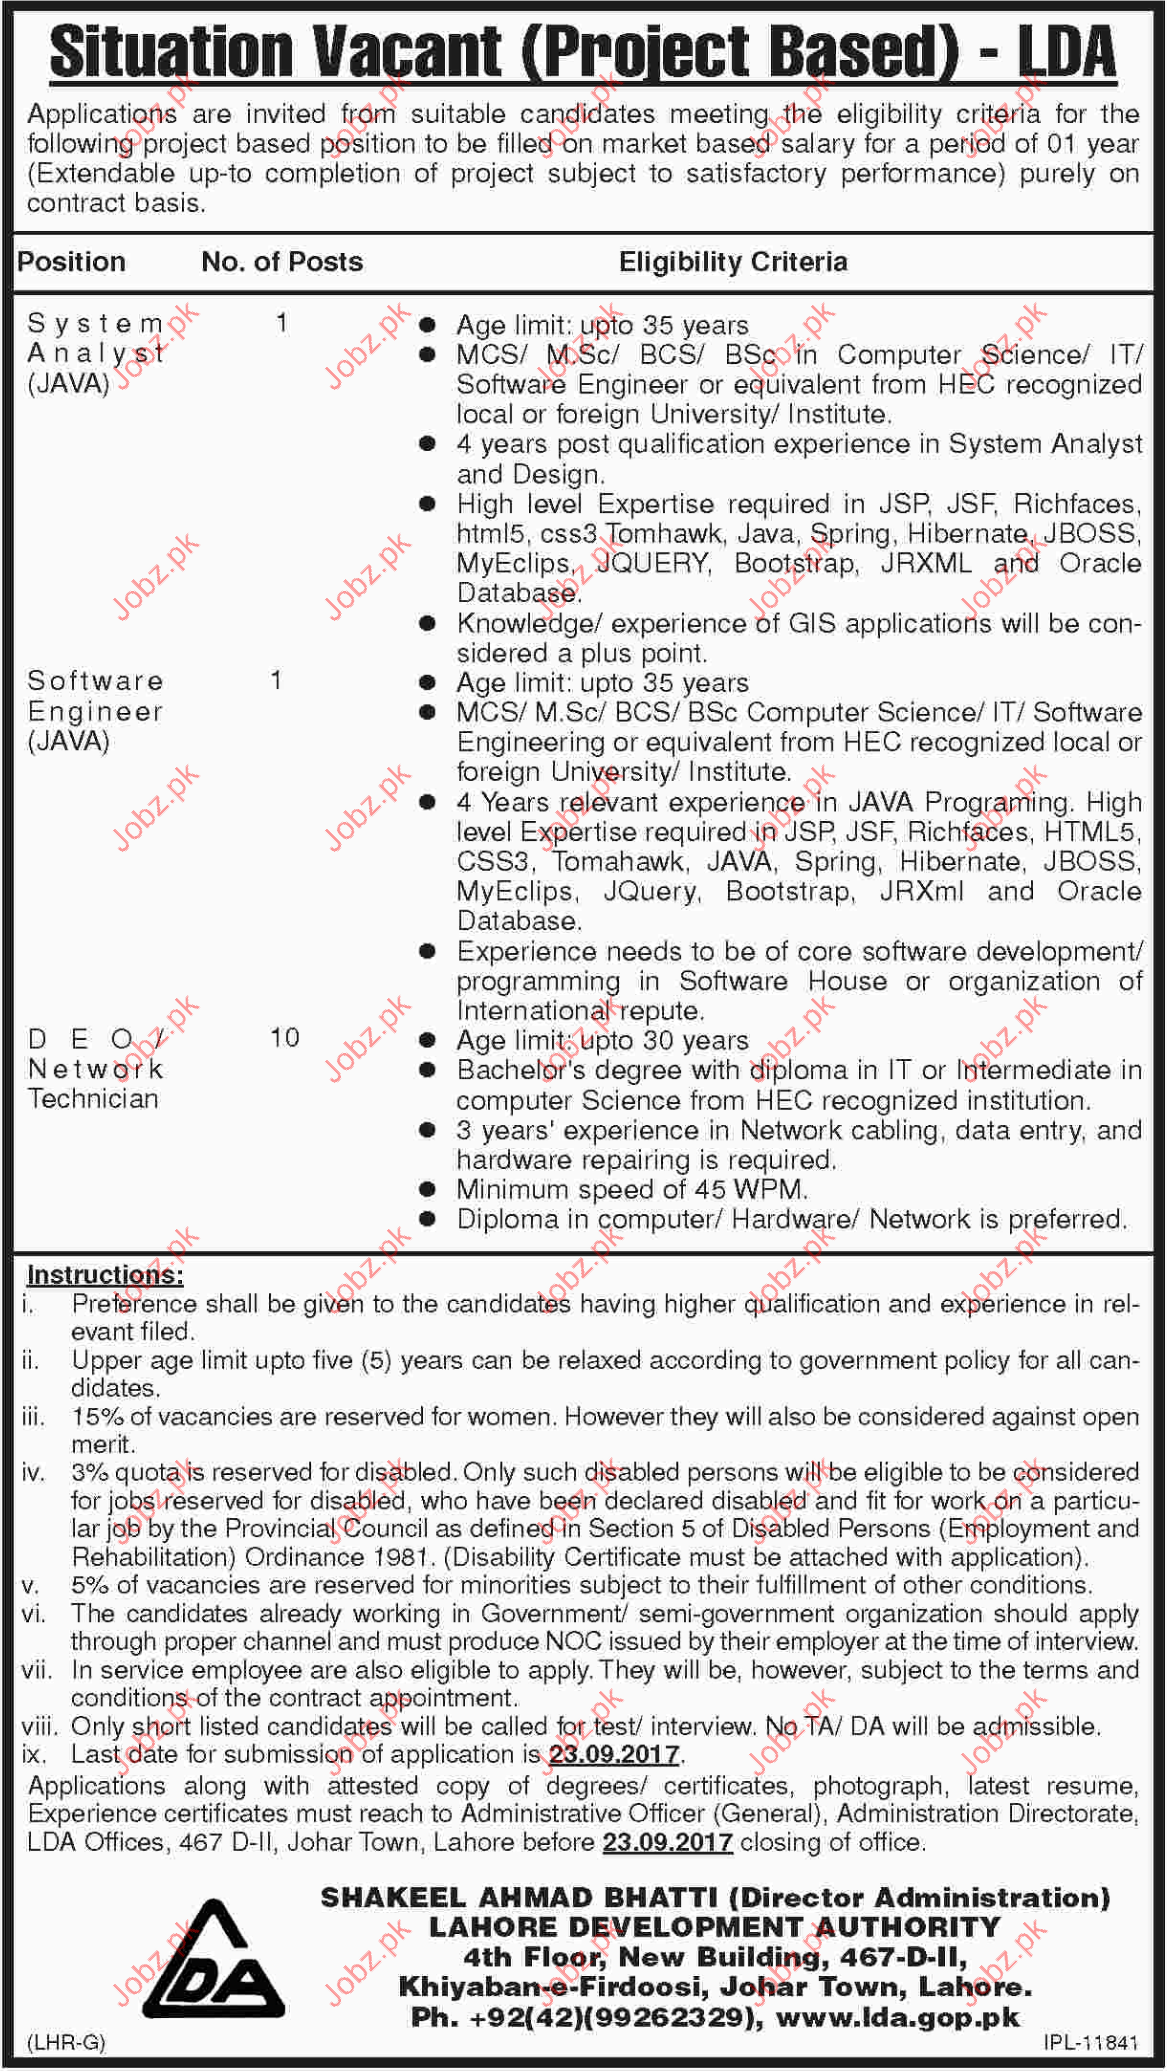 System Analyst Required For Lahore Development Authority